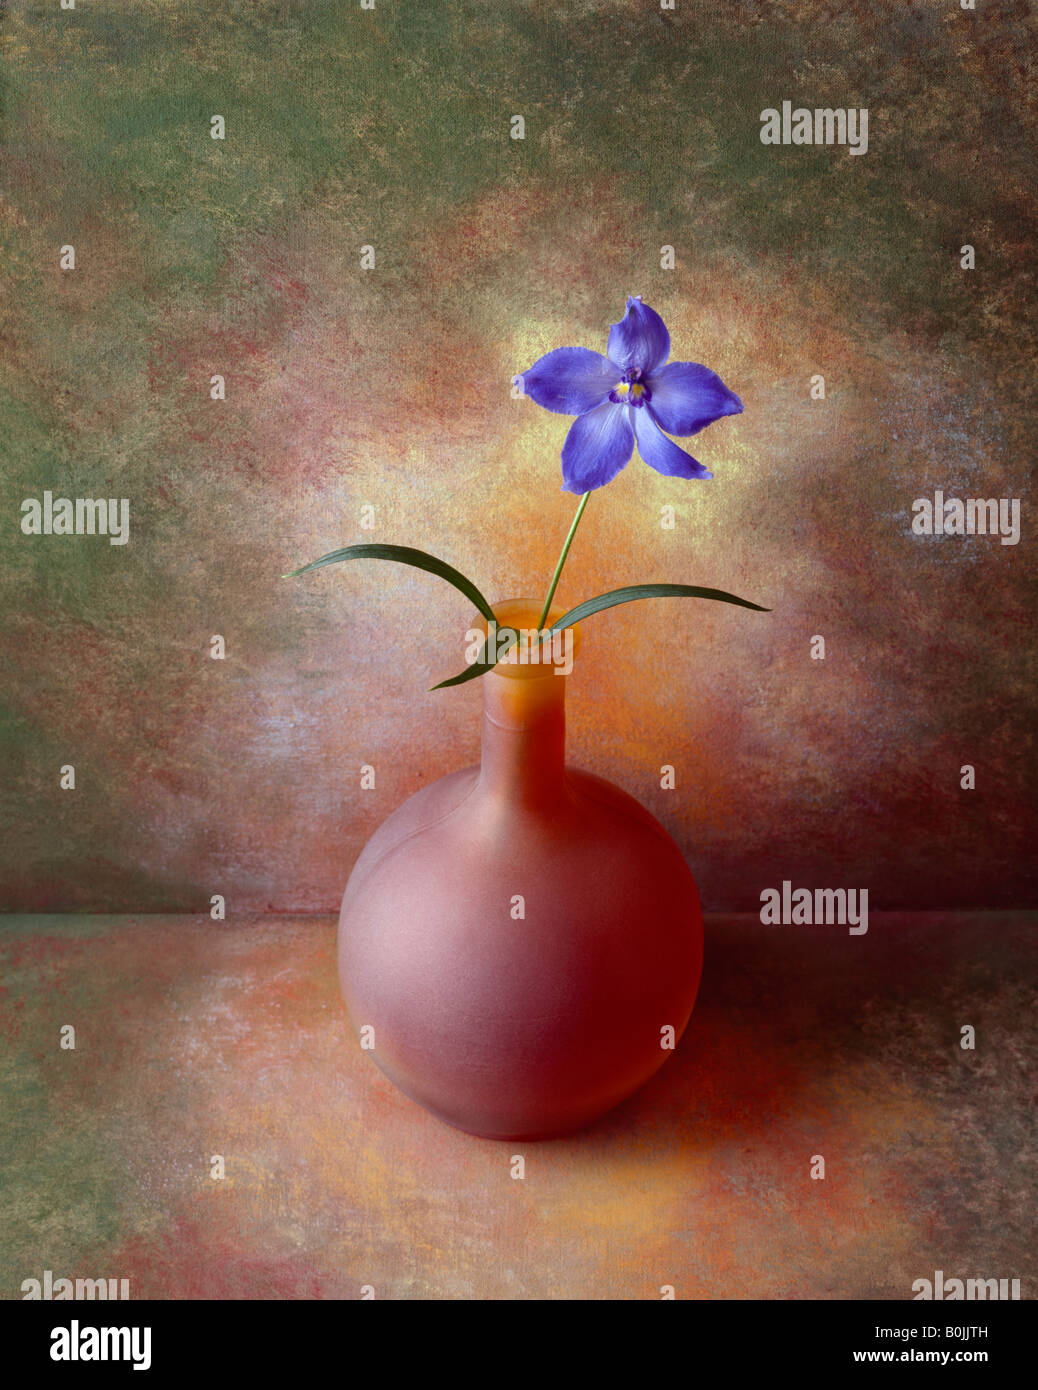 a colour picture of a flower in a vase against a hand painted background - Stock Image